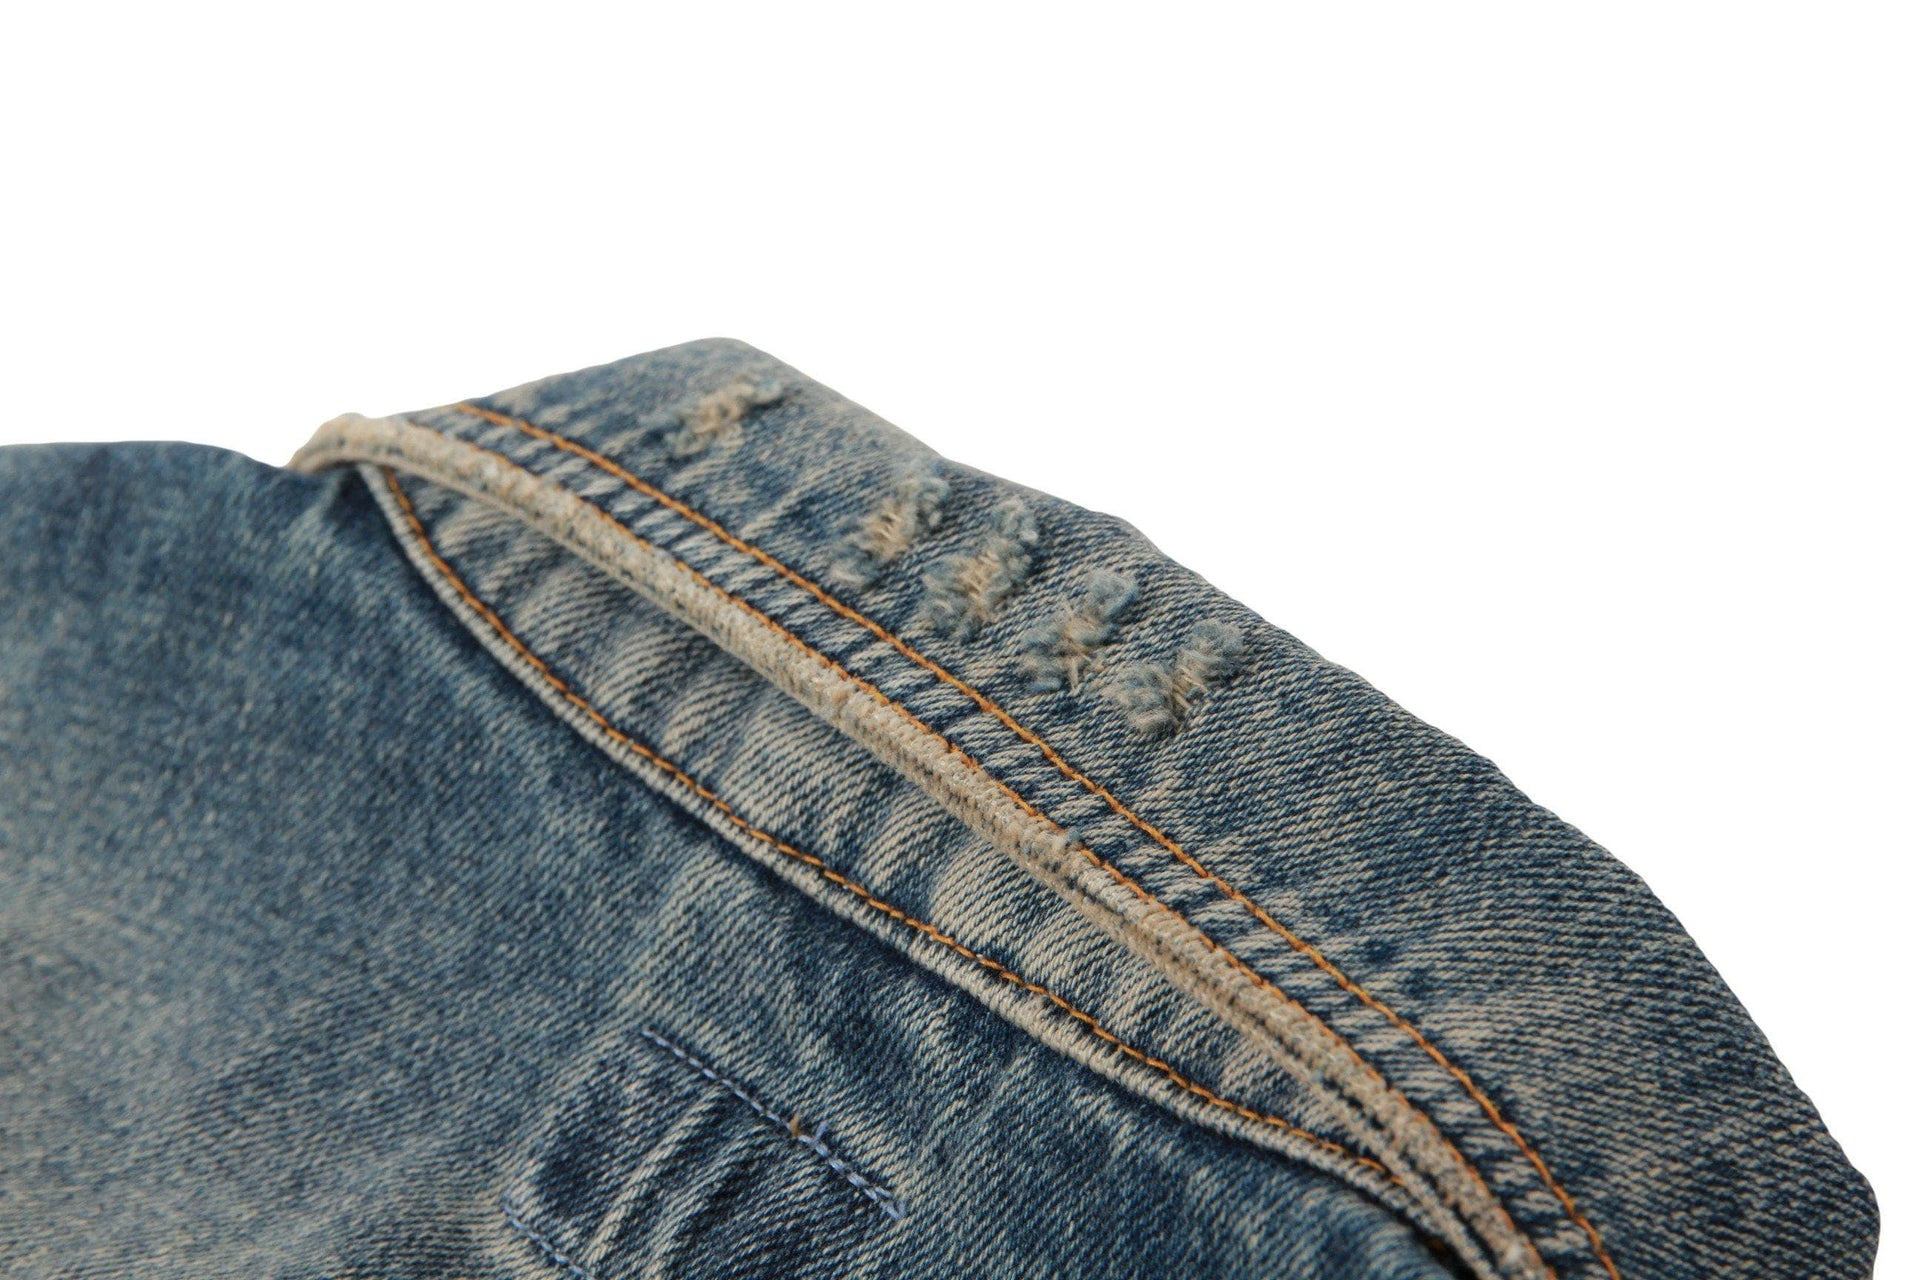 BILLY SHIMMERING INDIGO DENIM MENS SOFTGOODS NUDIE JEANS